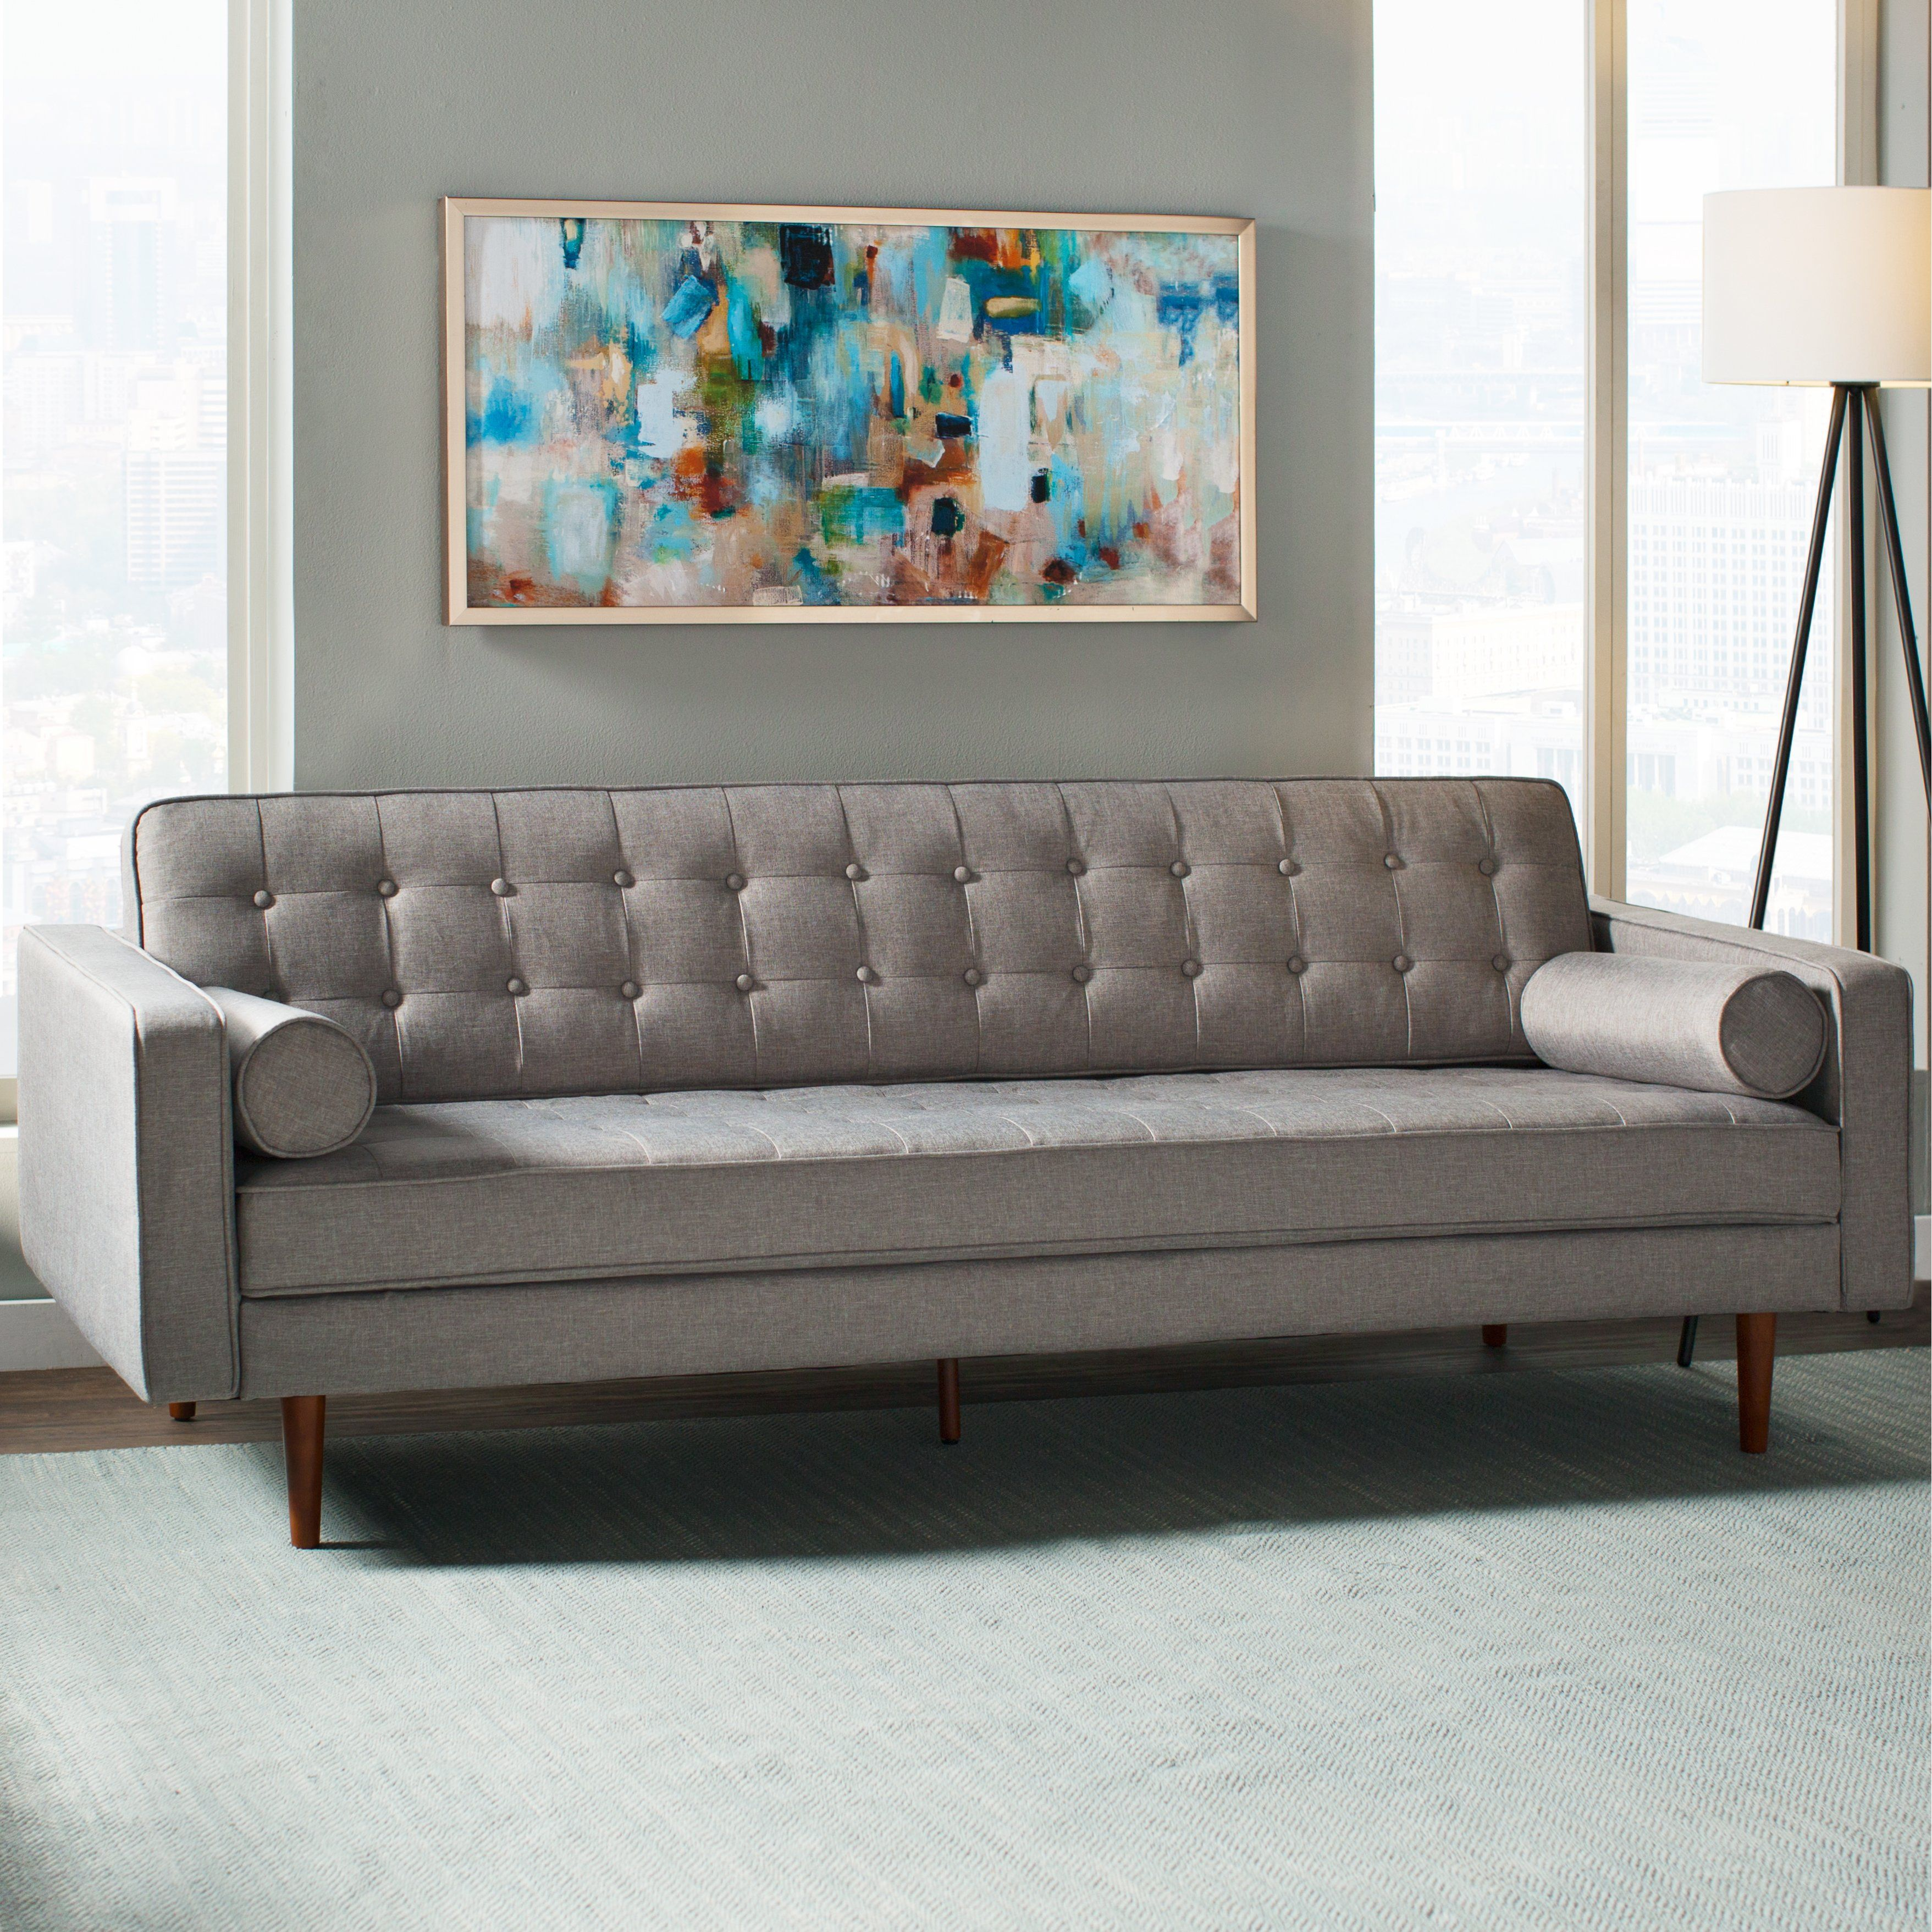 Main Image Zoomed | Quality living room furniture, Living ...